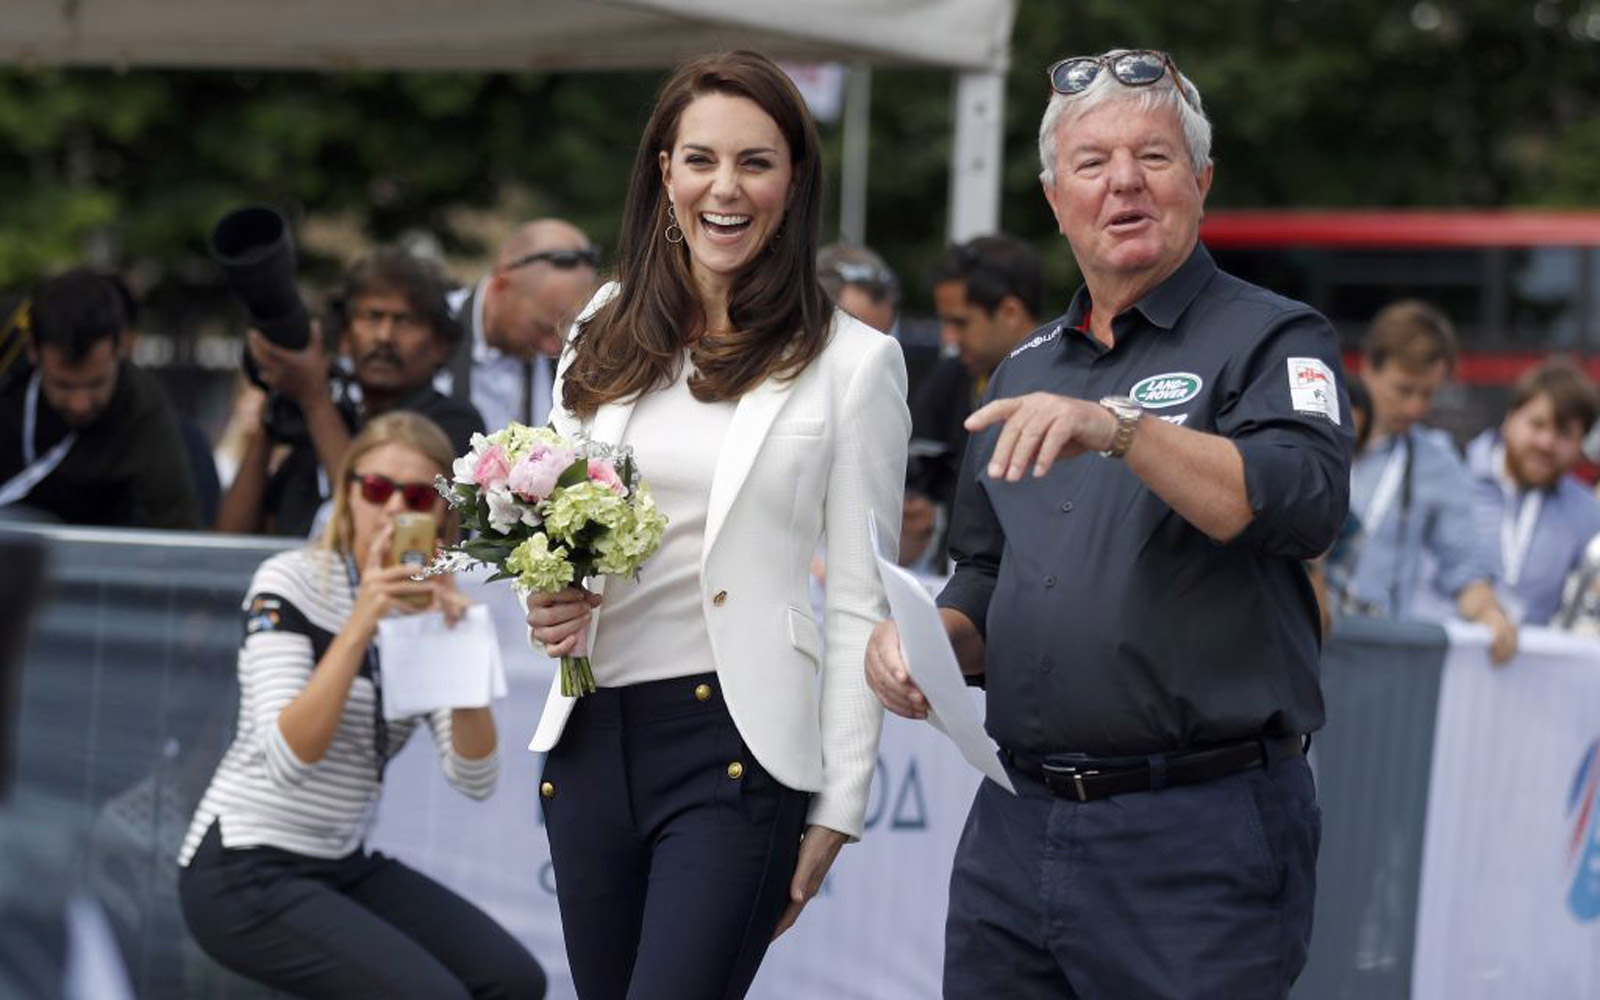 Britain's Catherine, Duchess of Cambridge (C), Patron of the 1851 Trust, is welcomed by Keith Mills as she attends the charity's final Land Rover BAR Roadshow at the Docklands Sailing and Watersports Centre in London, June 16, 2017. 